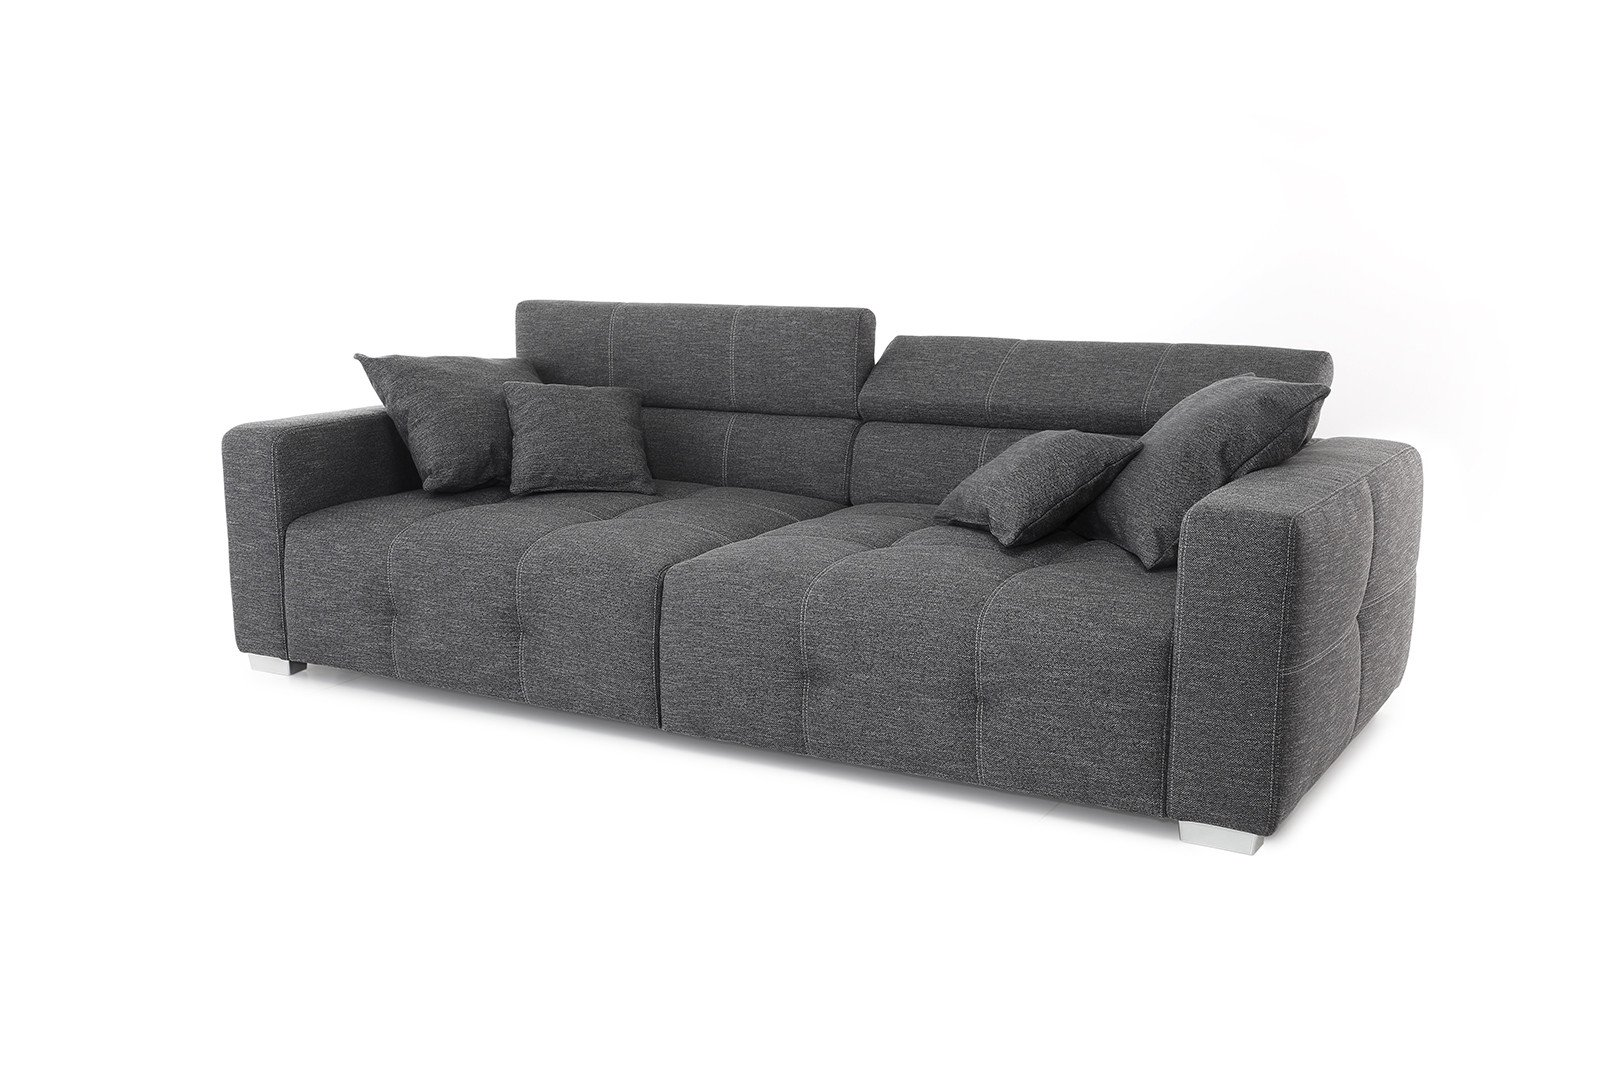 jockenh fer trento big sofa in blau m bel letz ihr online shop. Black Bedroom Furniture Sets. Home Design Ideas